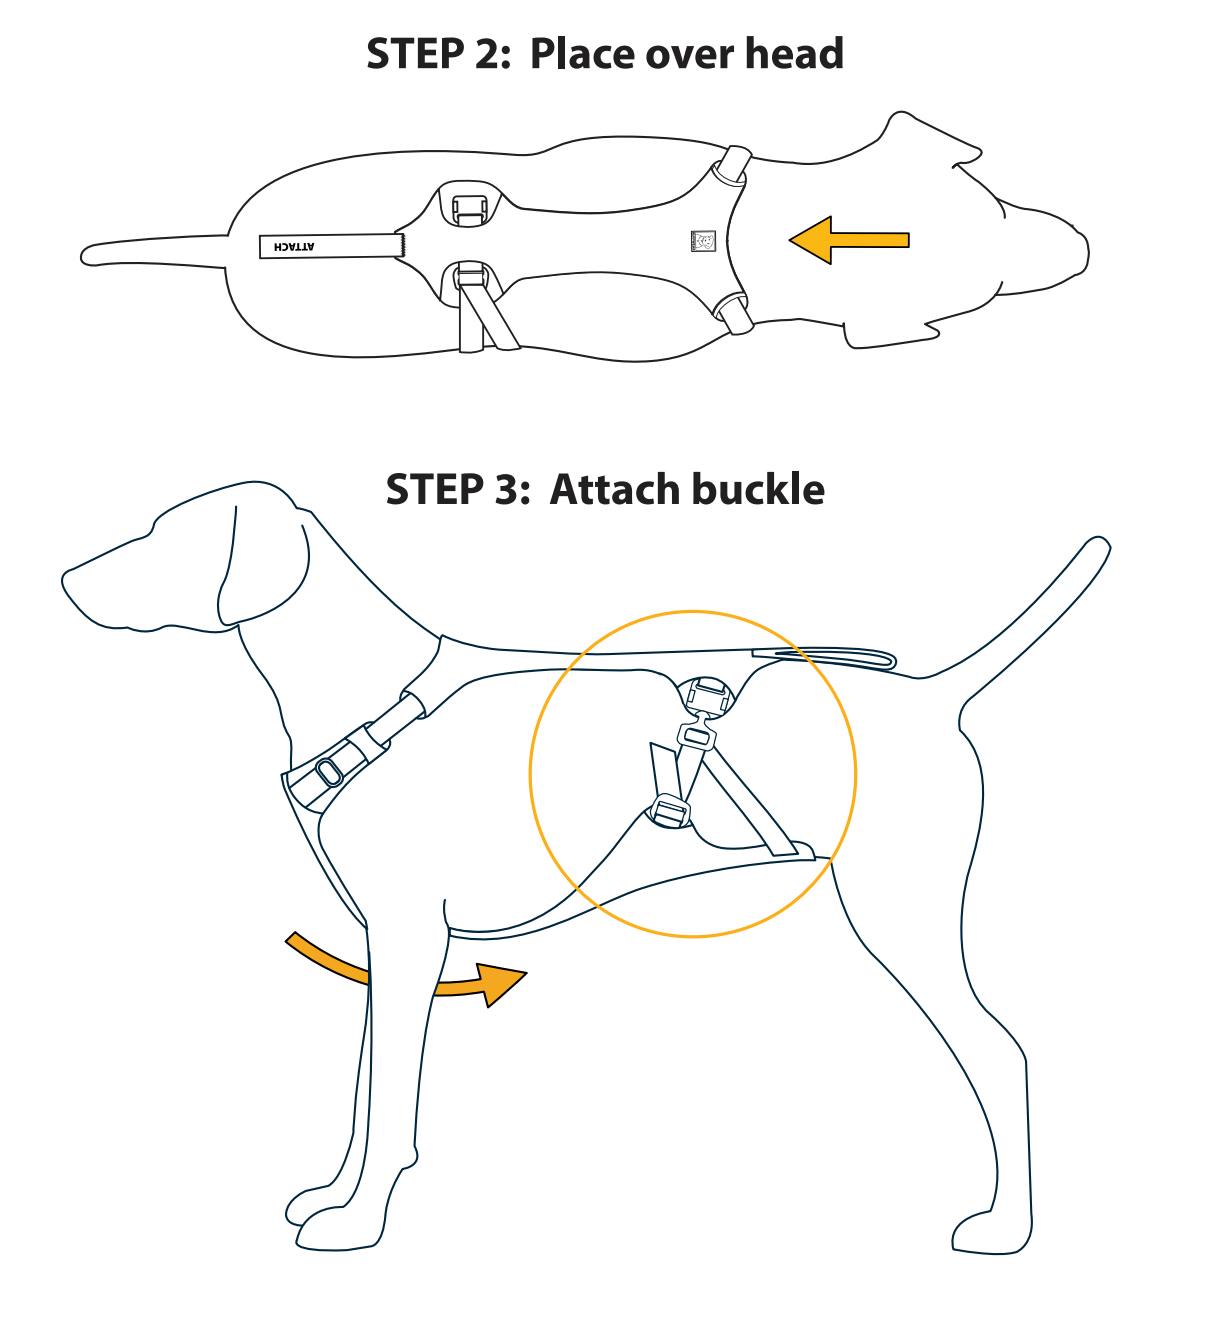 Step 2: Put on Dog and Step 3: Attach buckle